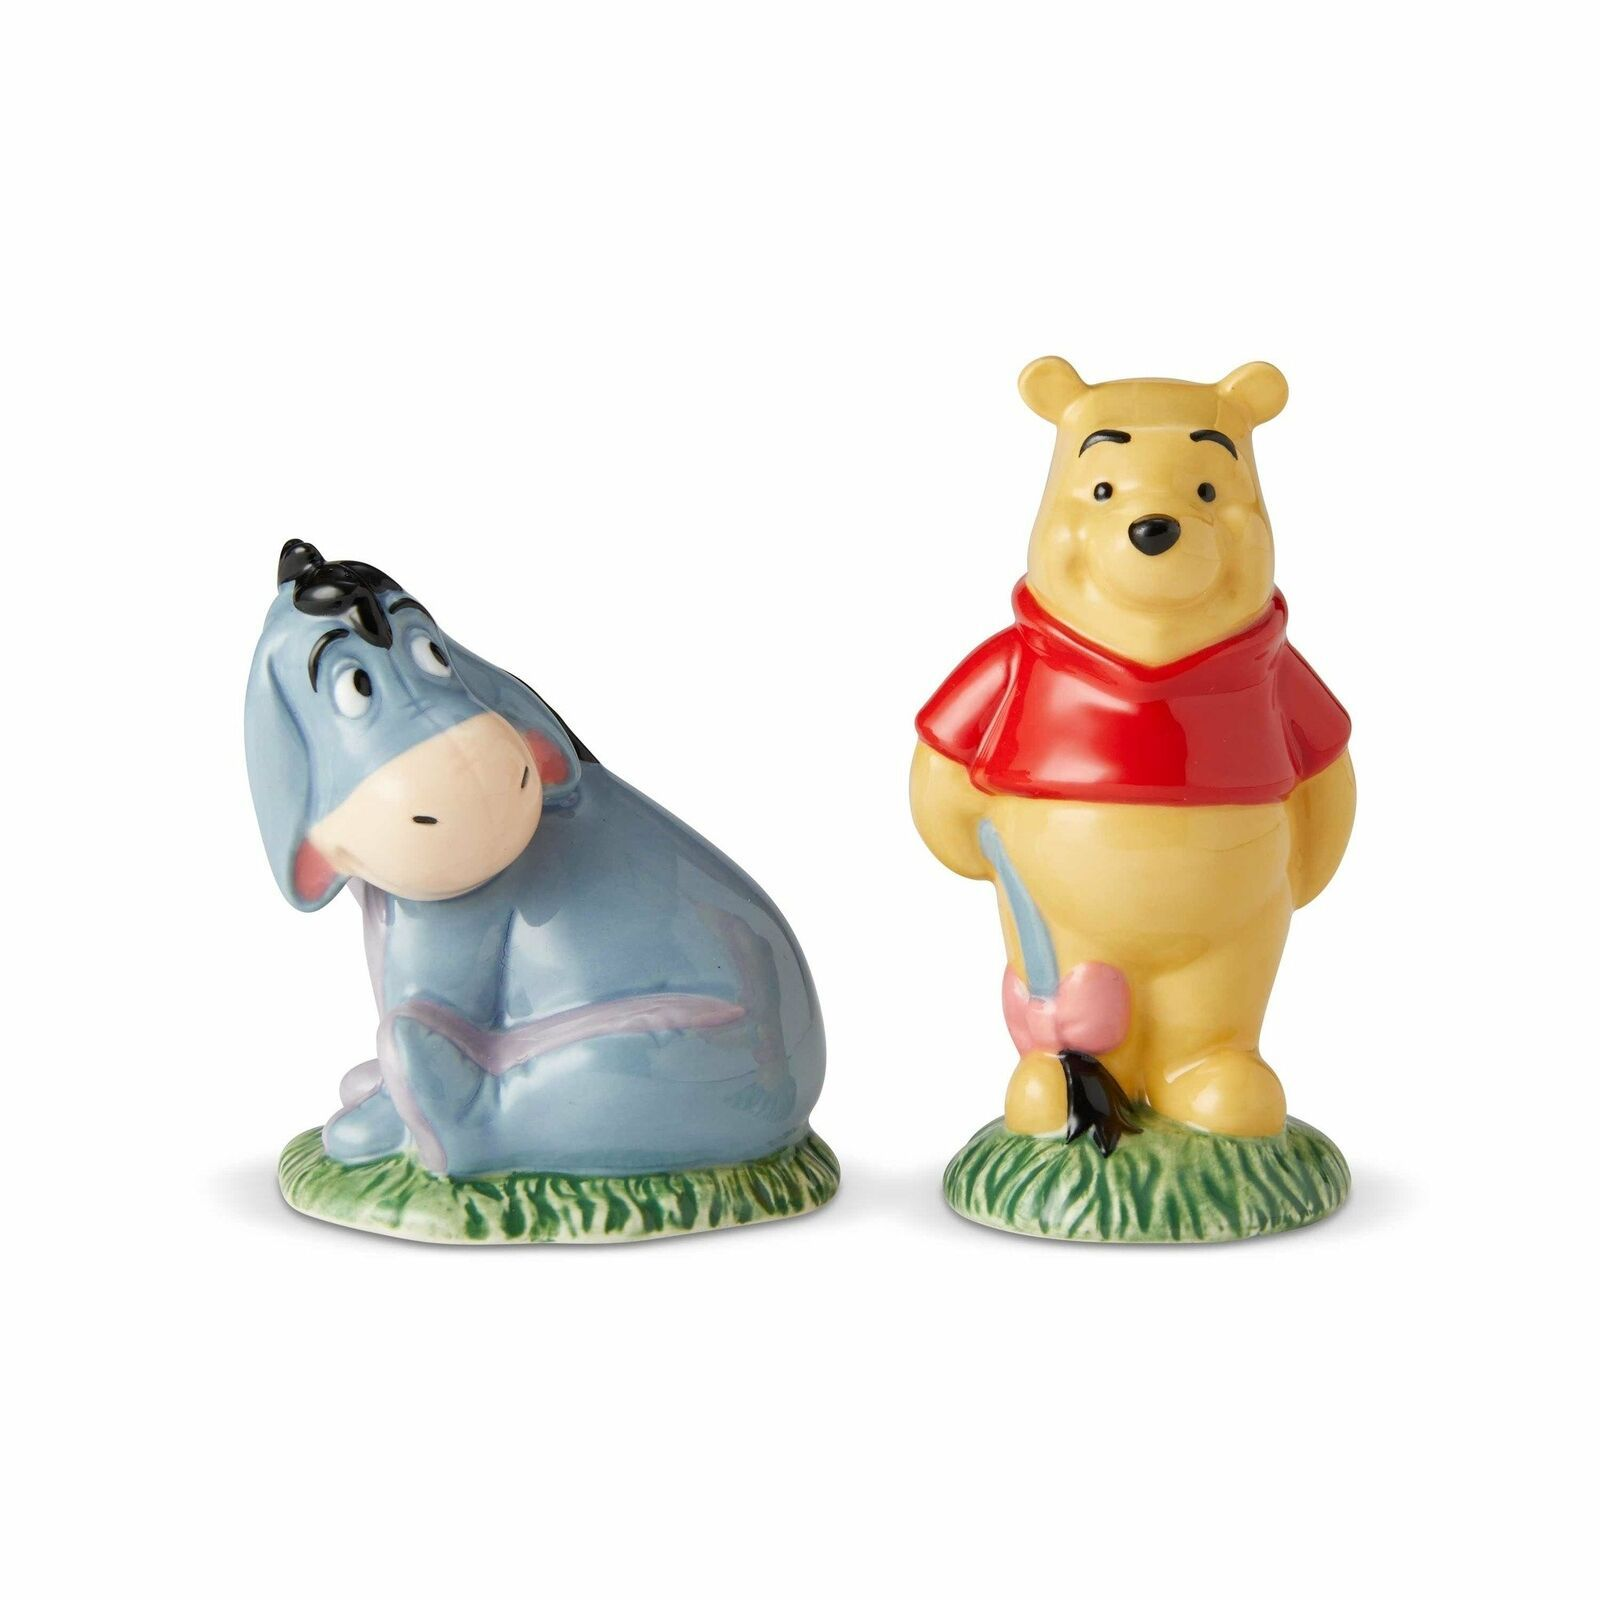 Walt Disney Winnie the Pooh and Eeyore Ceramic Salt & Pepper Shakers Set BOXED